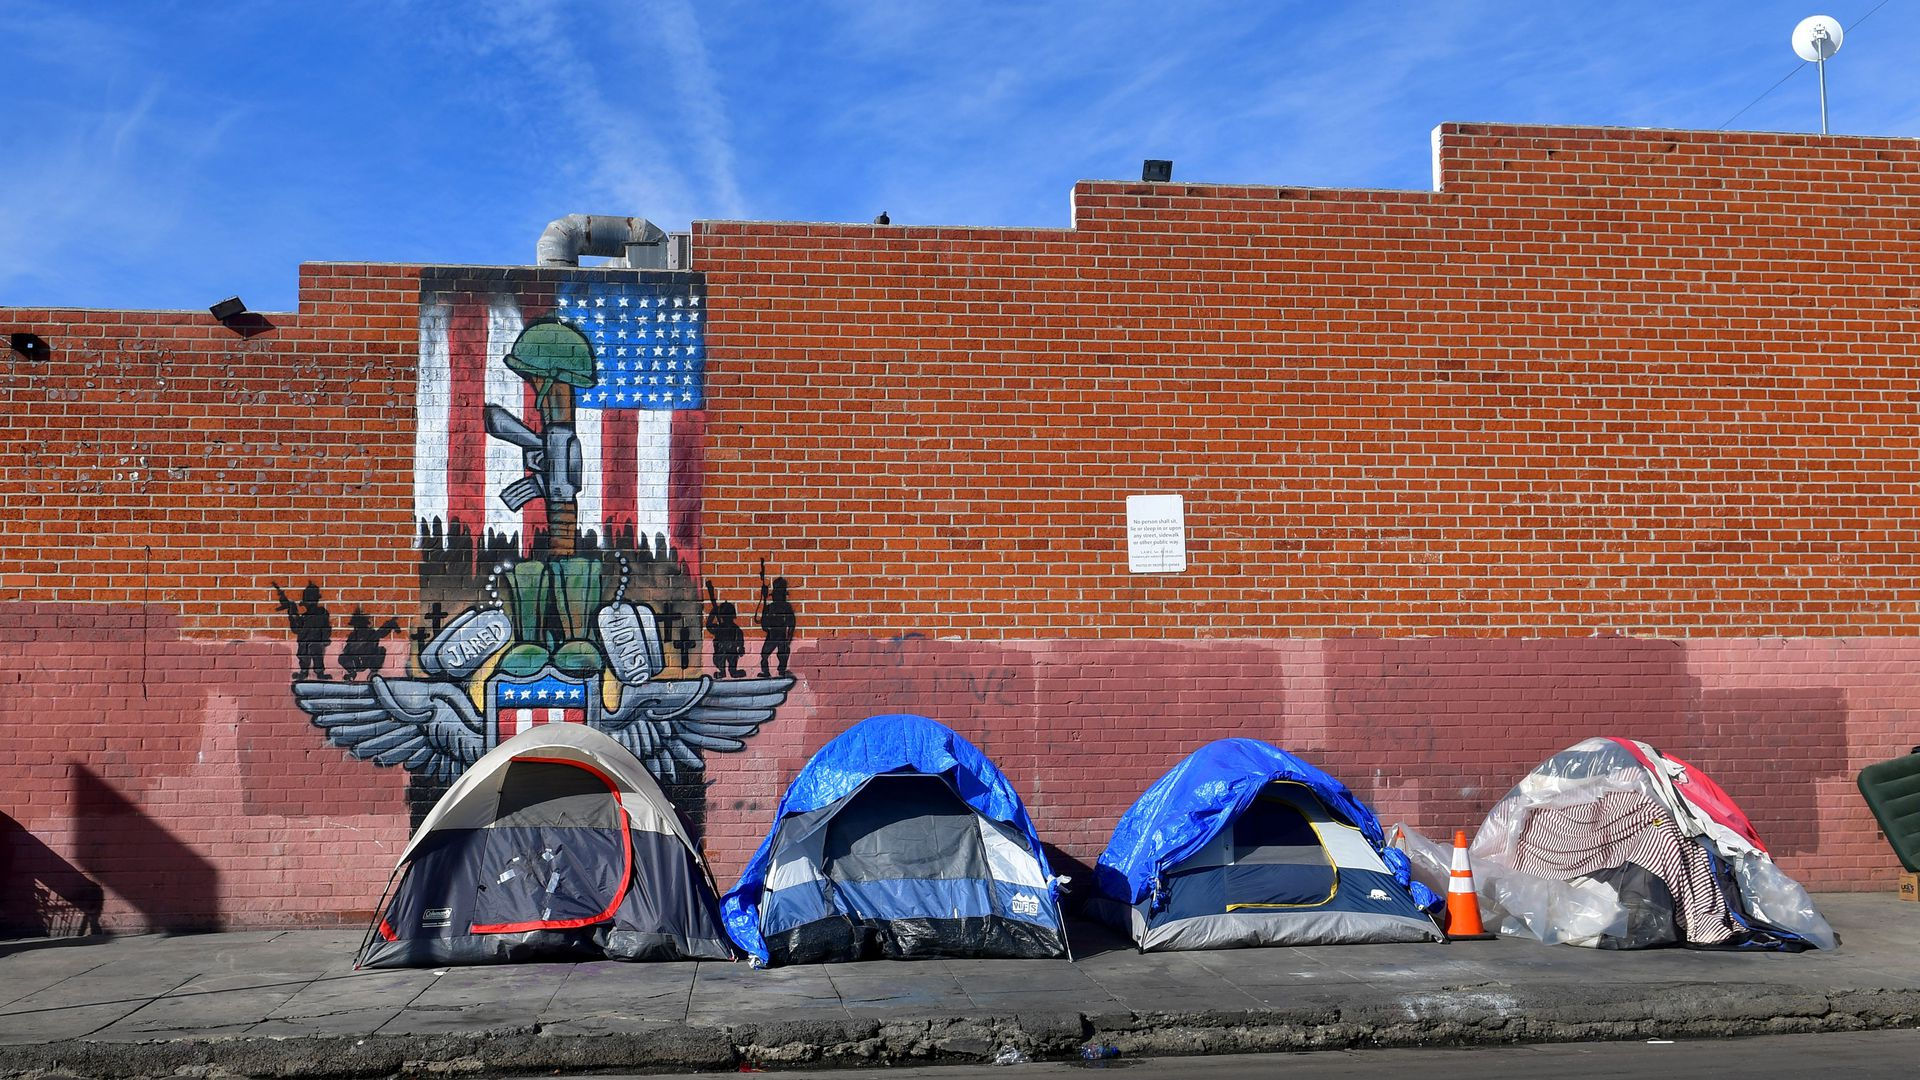 Tents for the homeless line a sidewalk in Los Angeles, California on December 17